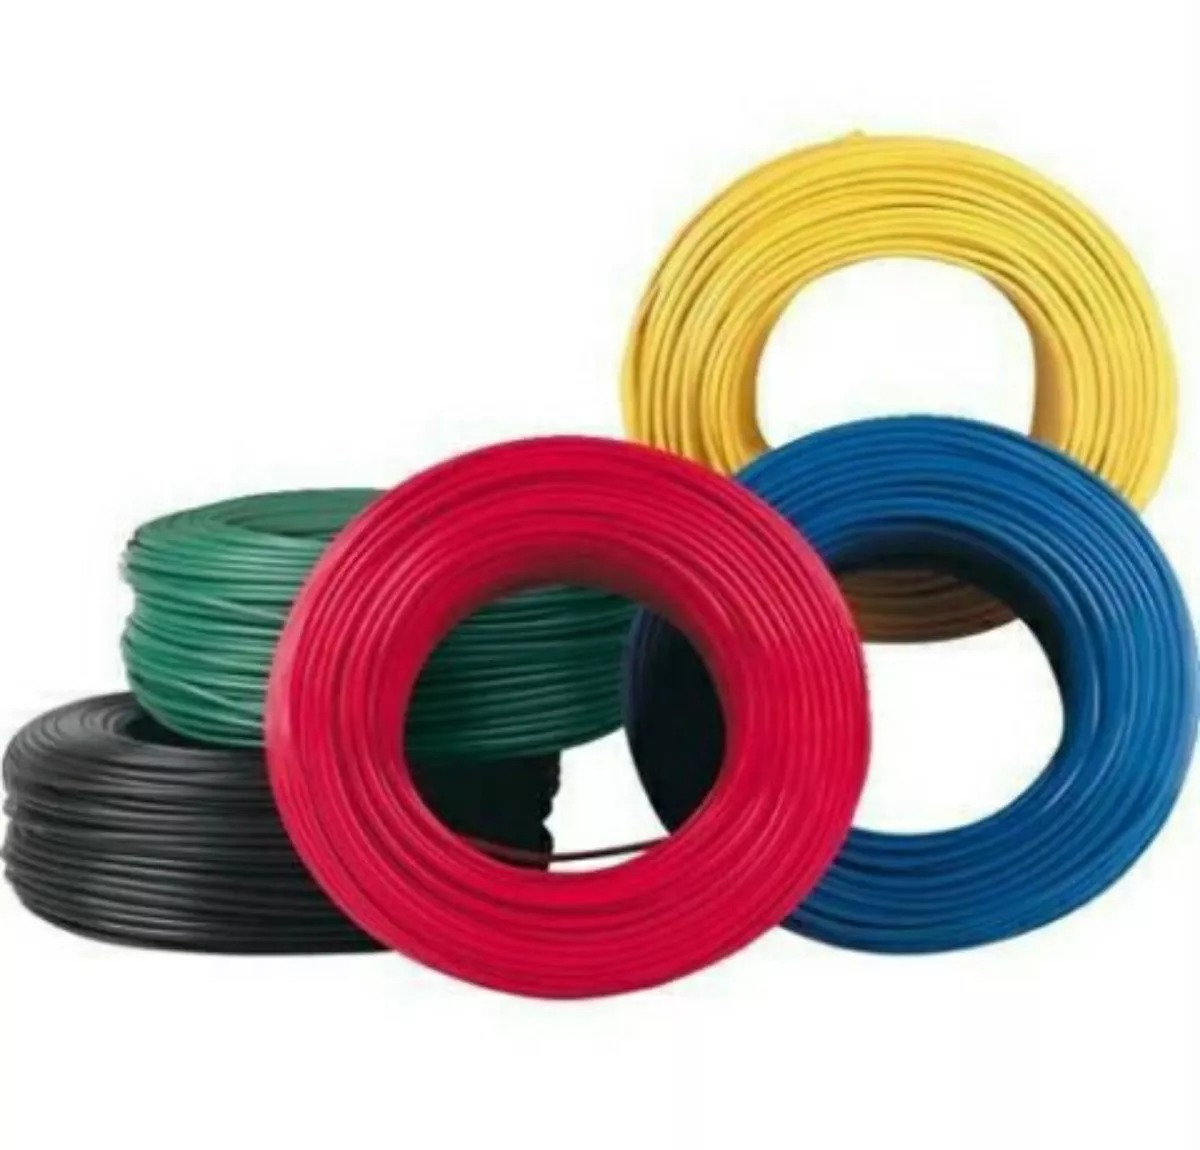 cables-electricos-5